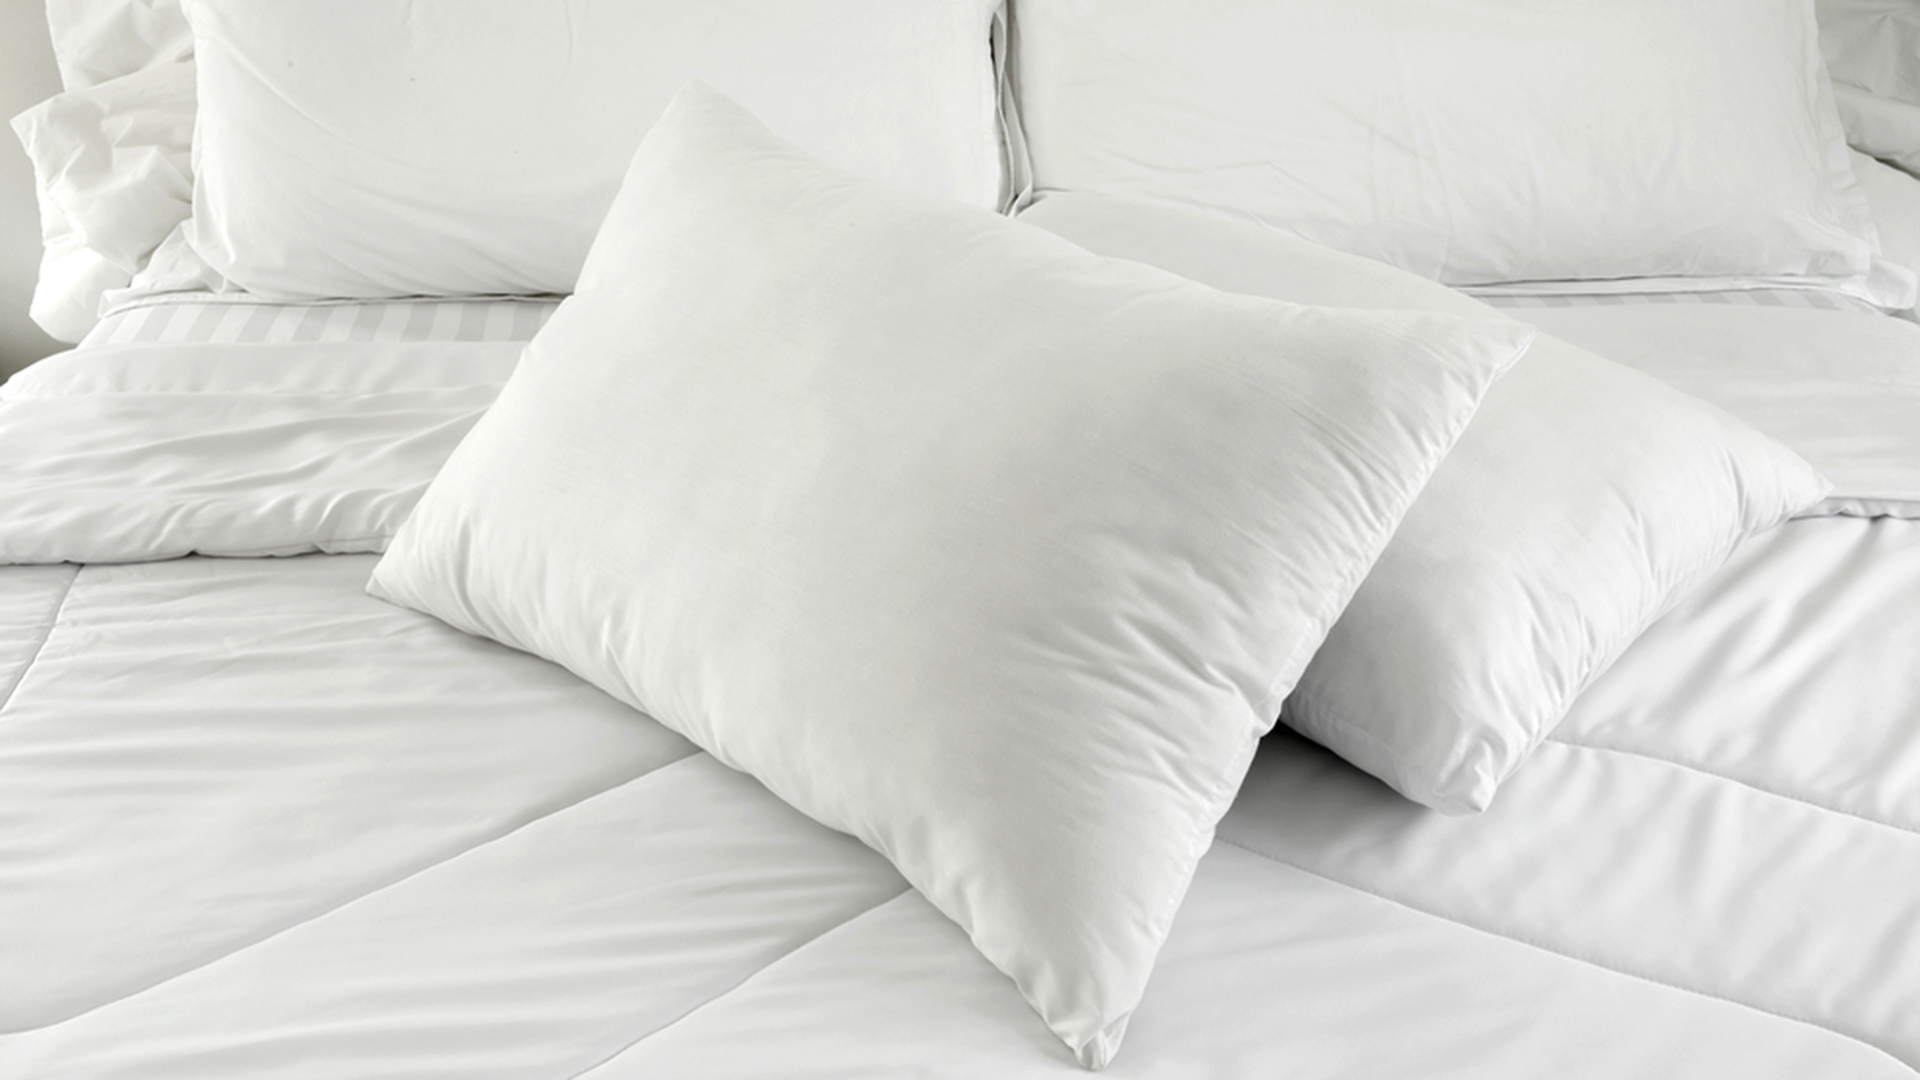 Extra Comfort Bed Pillow with Arms for Any Purpose: Bed Pillow With Arms | Bed Wedge Pillow Target | Bed Rest Lounger